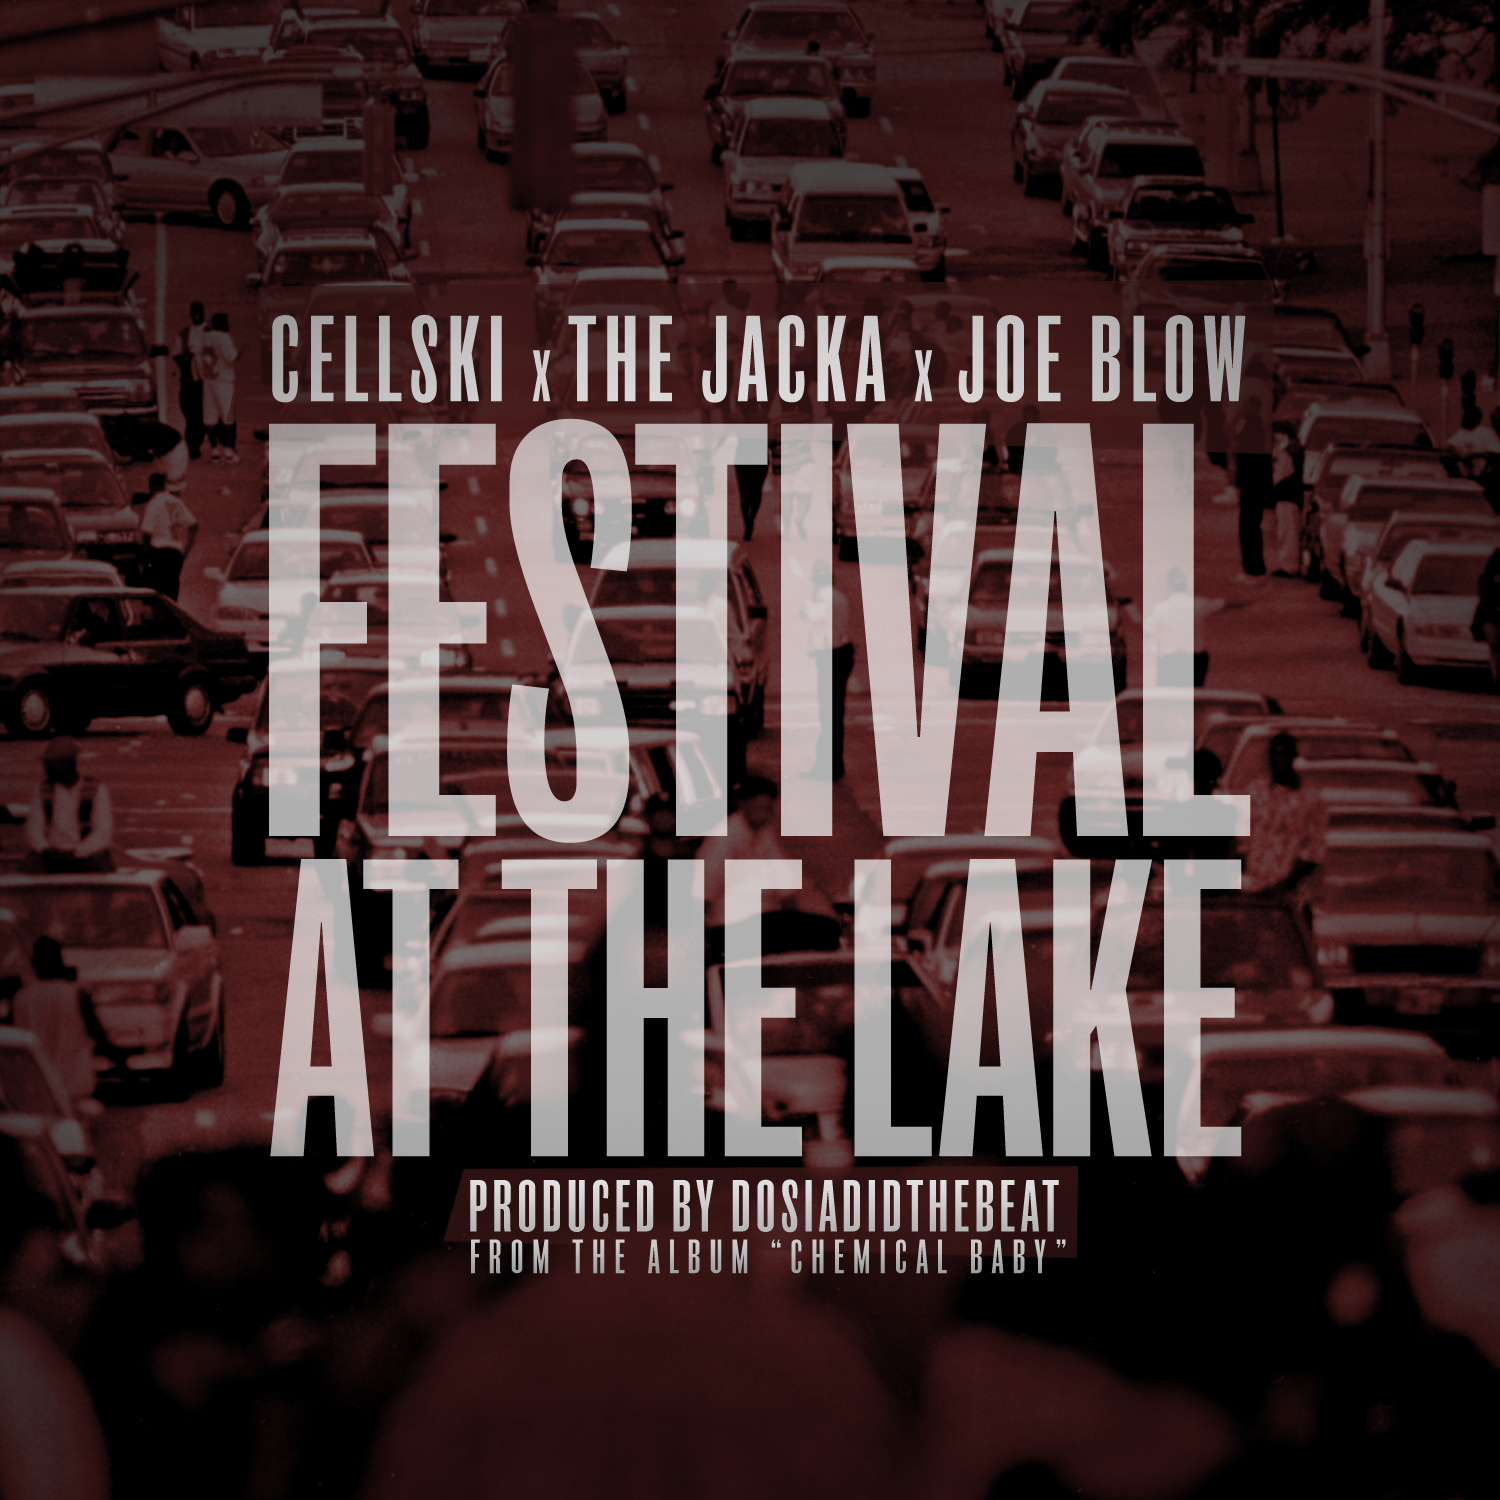 Cellski ft. The Jacka & Joe Blow - Festival at the Lake [Thizzler.com]